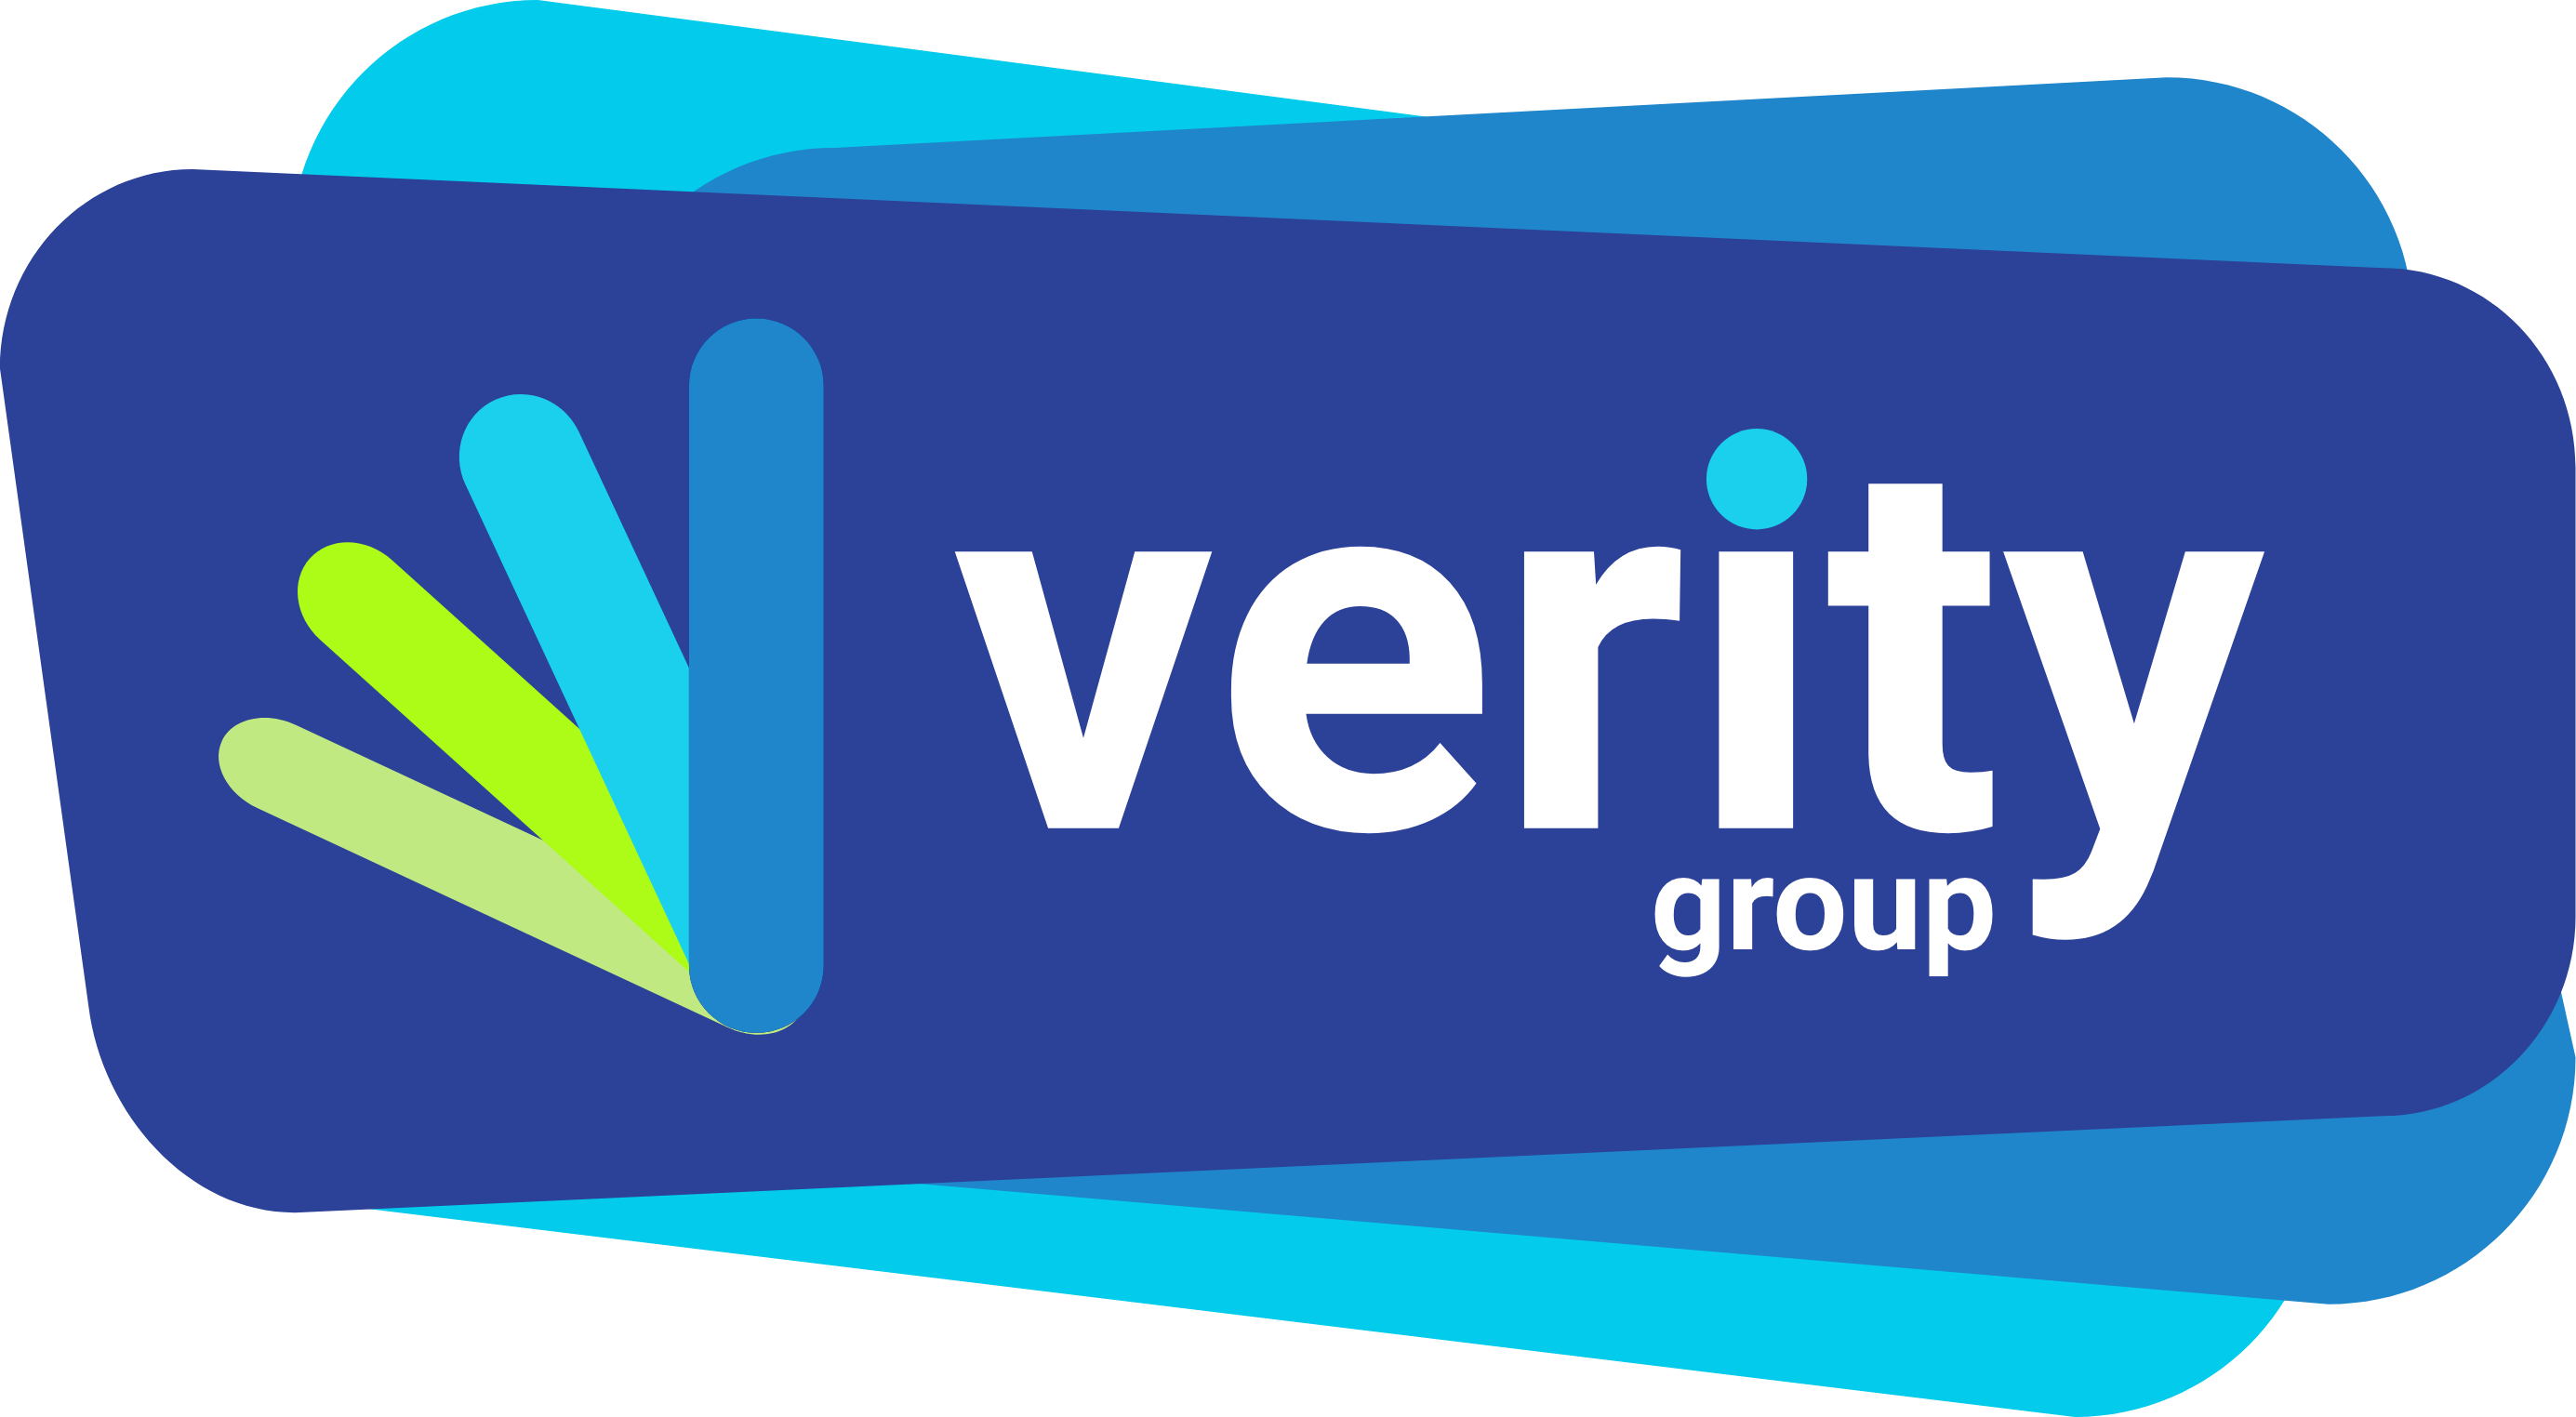 Verity Group